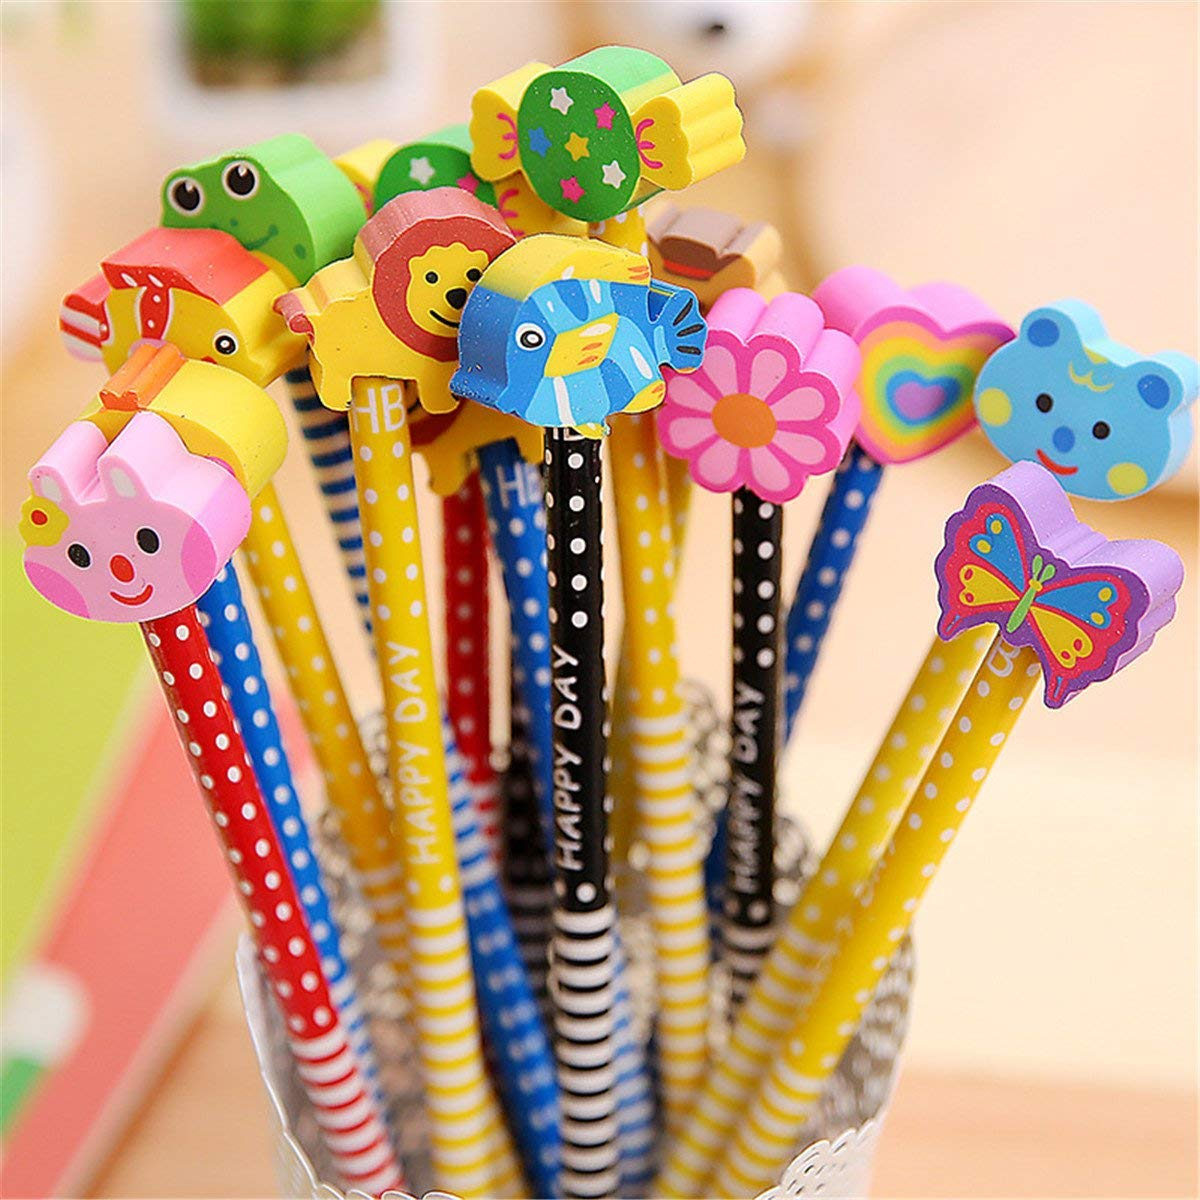 TANG SONG 40PCS Novelty Wood Lead Pencil with Cute Cartoon Eraser Great for Office School Supplies Students Children Gift